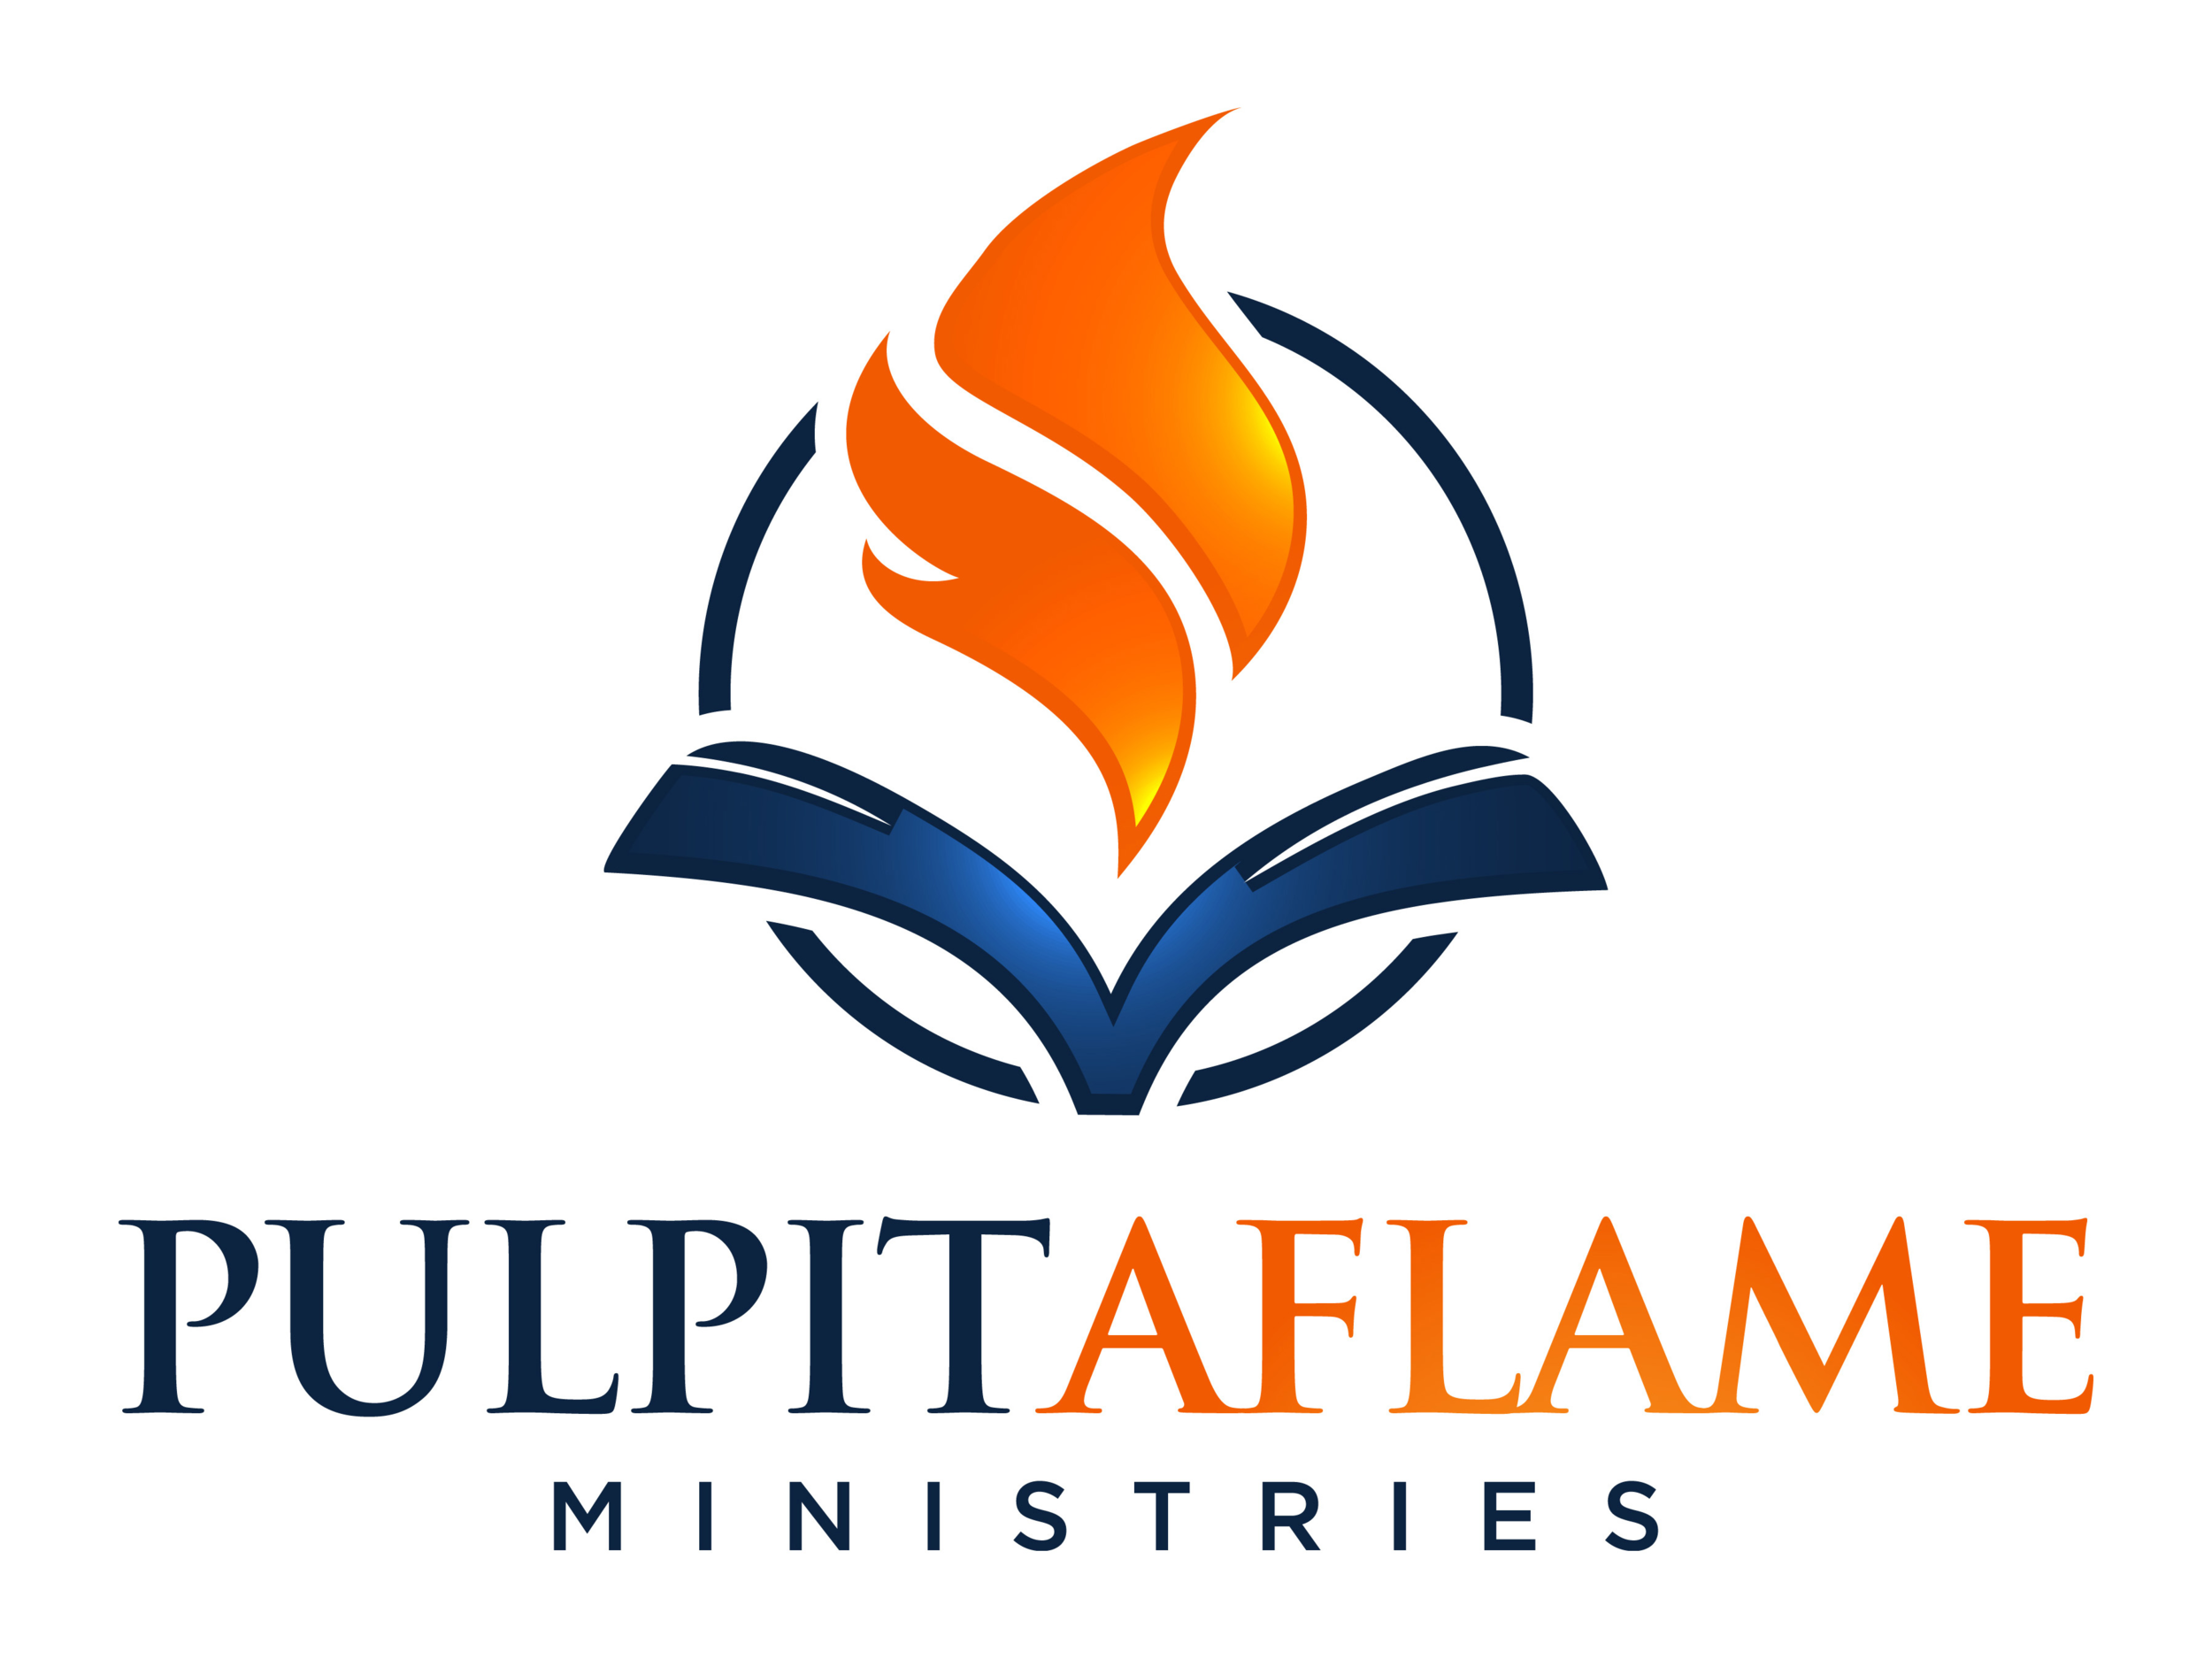 PULPIT AFLAME MINISTRIES.png